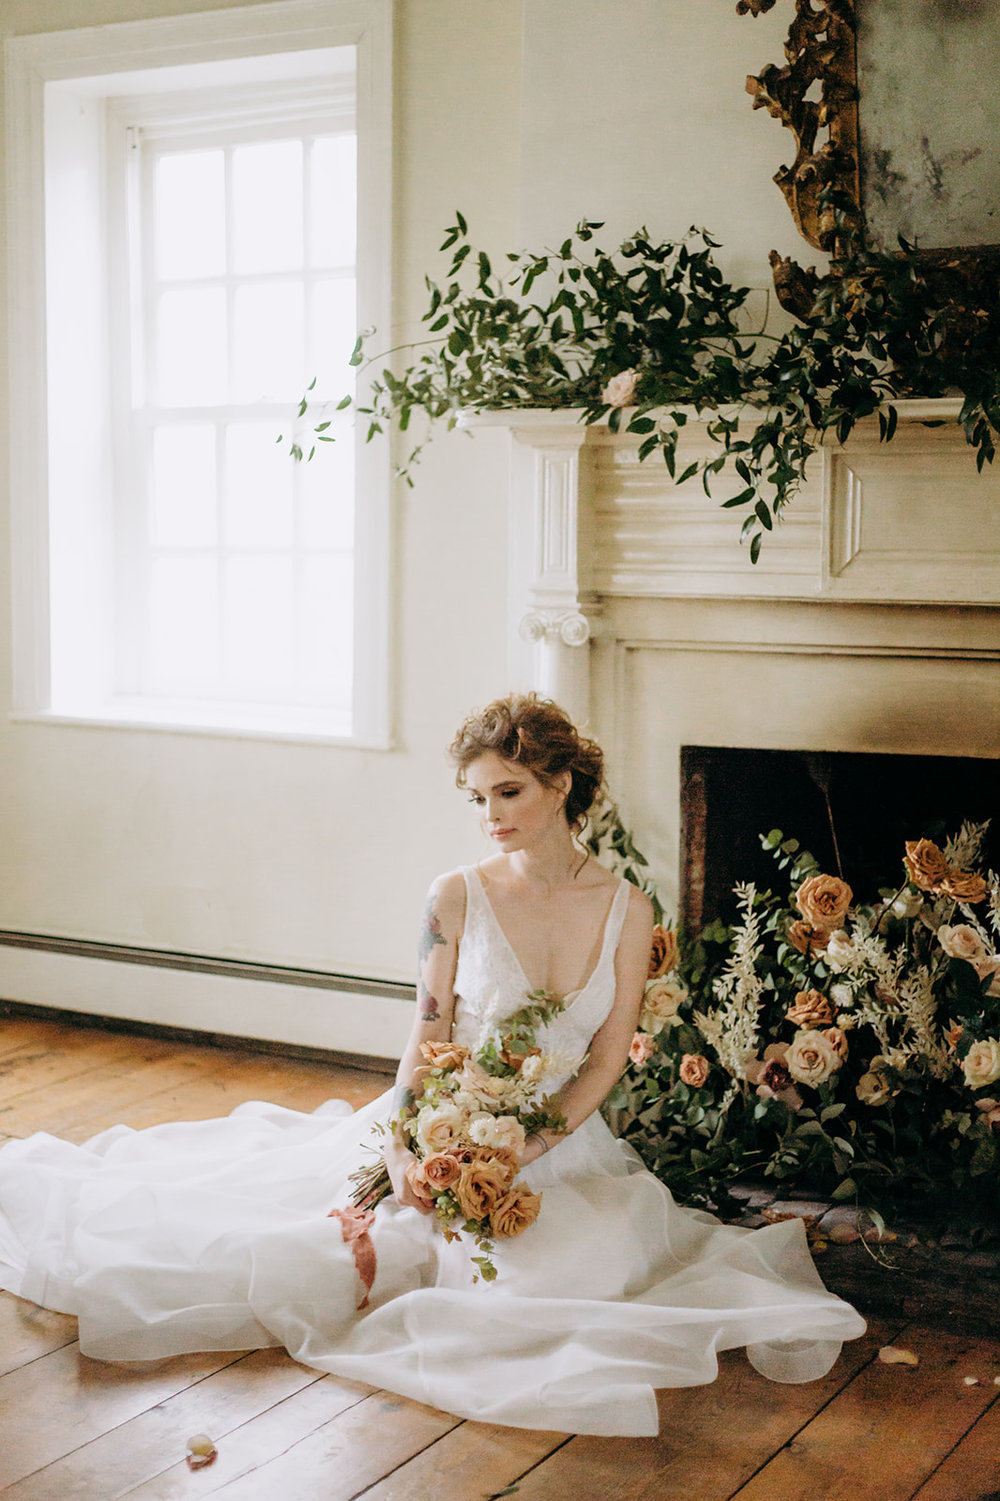 lea-ann-belter-bridal-editorial-windrift-hall-wedding-photographer-new-york-277.jpg